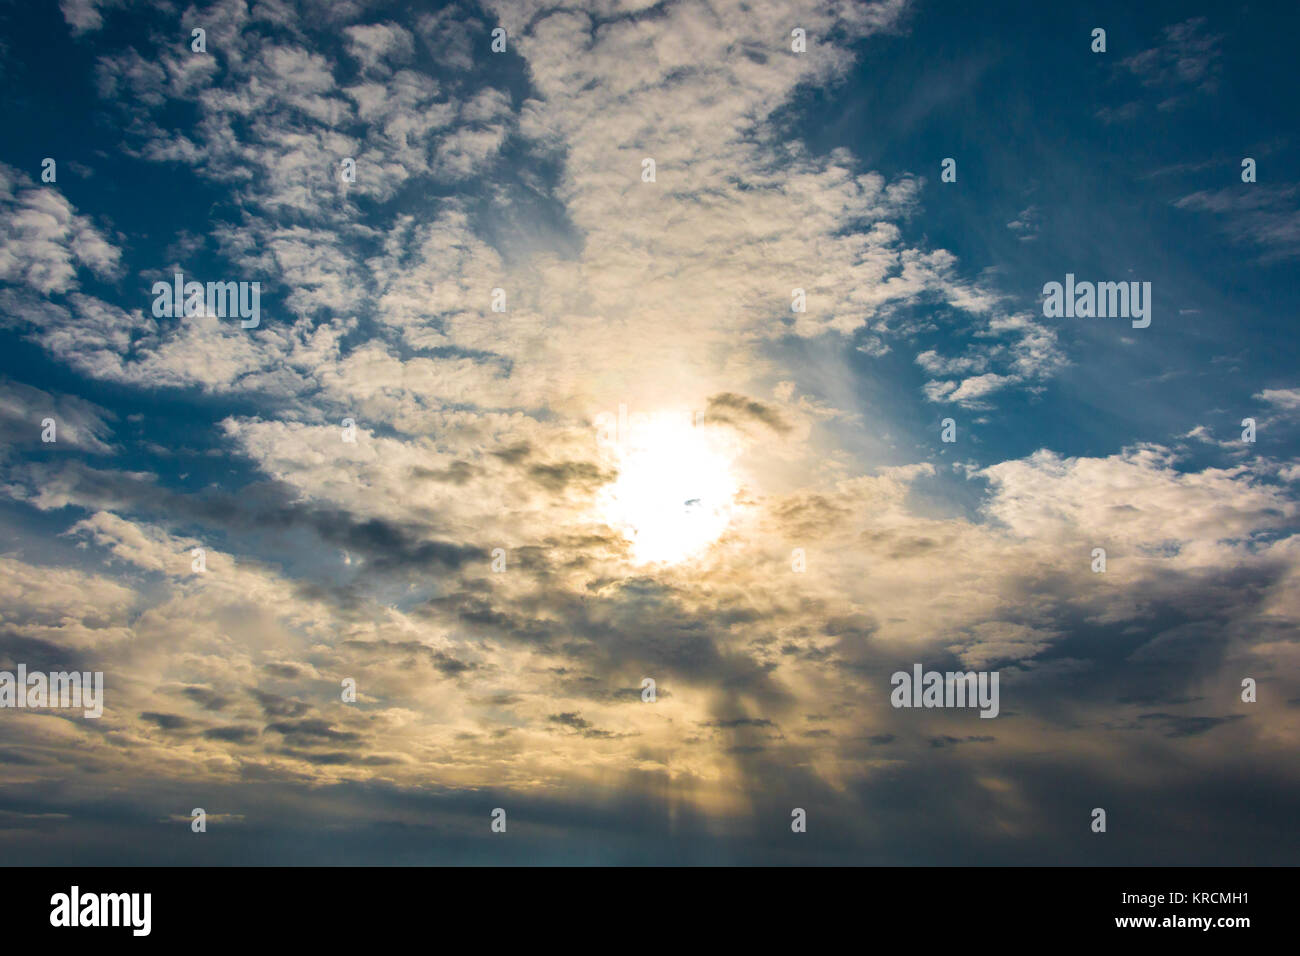 The sky full of white clouds and the golden sun - Stock Image